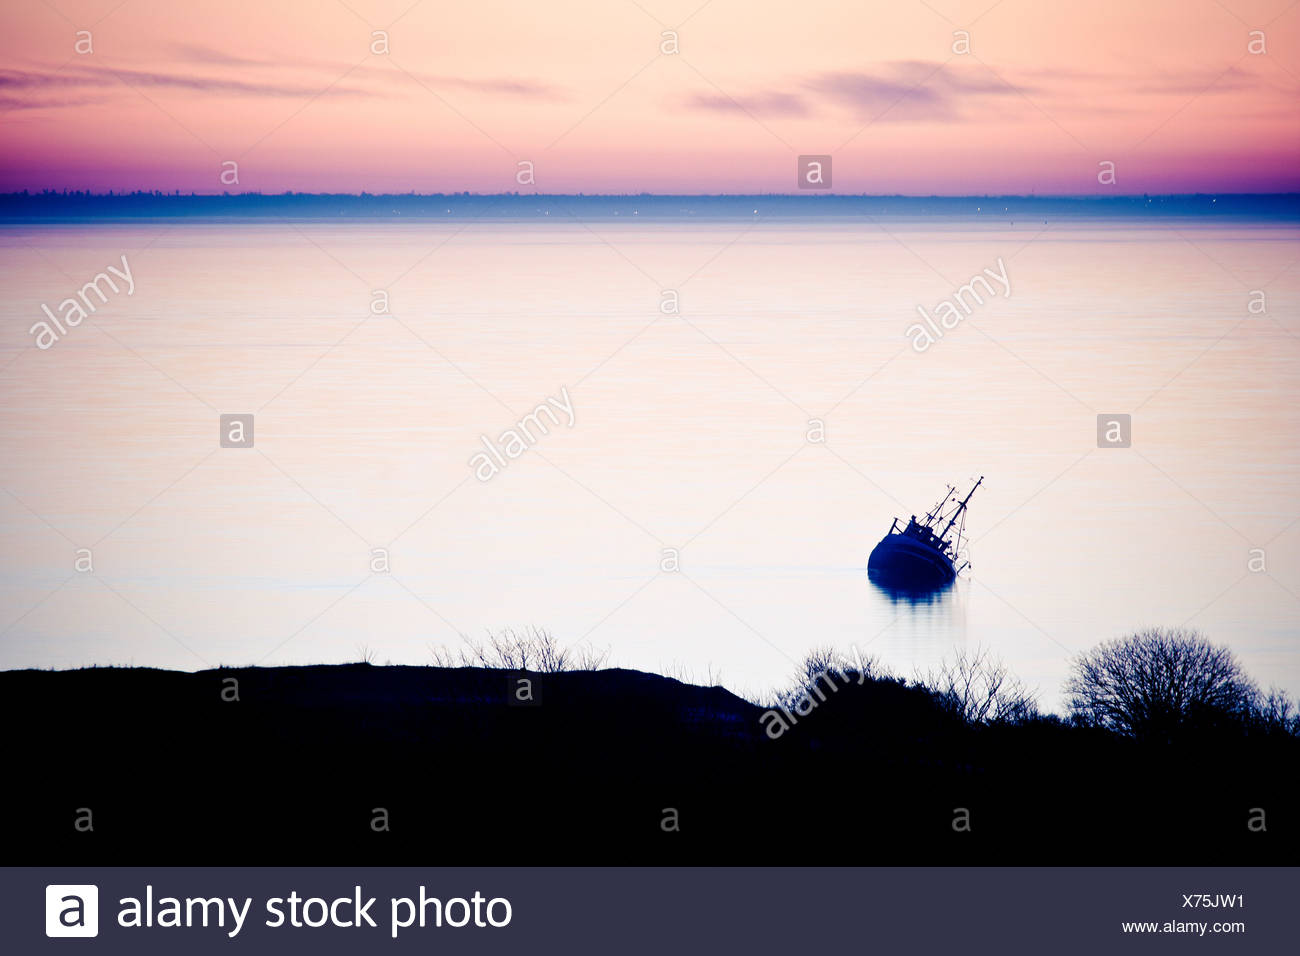 Evening by the sea - Stock Image